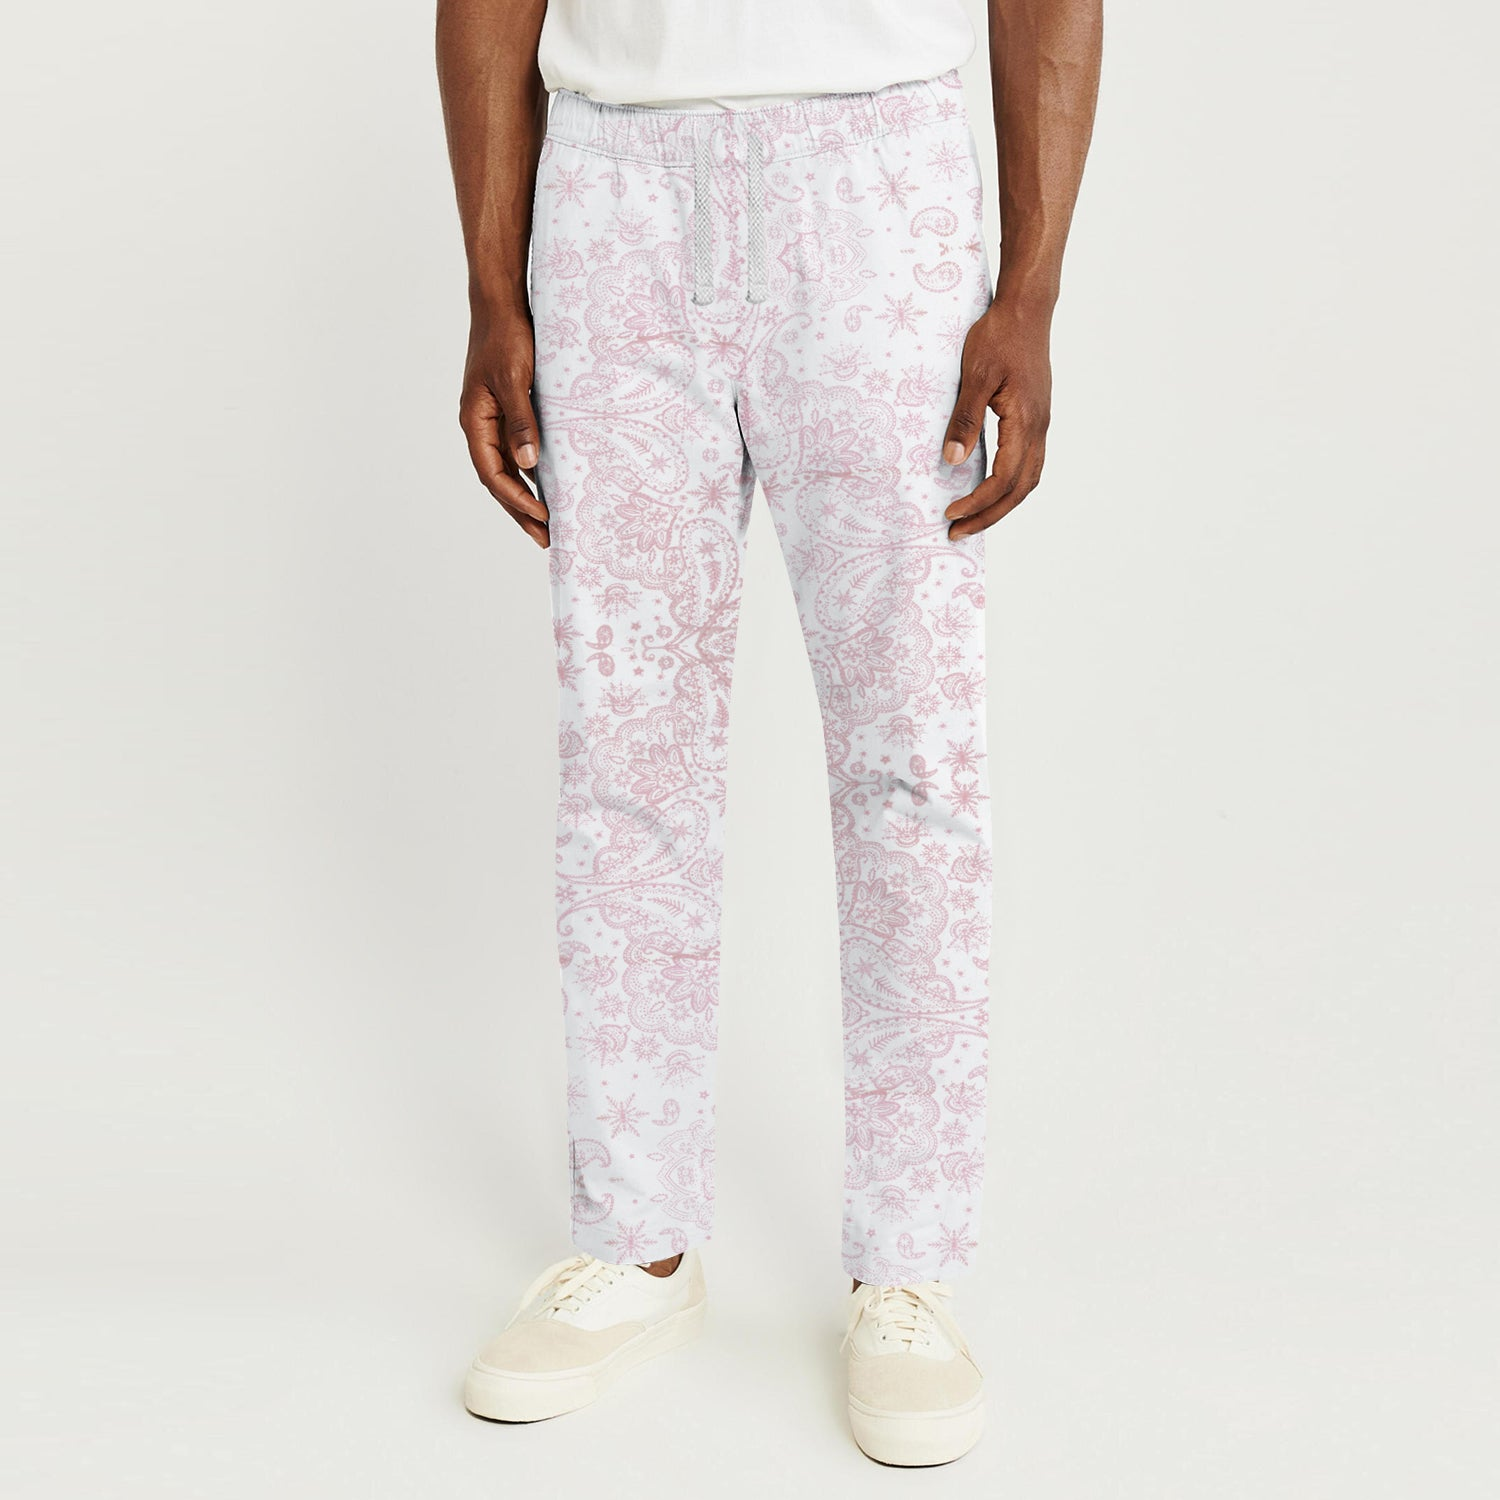 Zara Man Slim Fit Flannel Trouser For Men-White with Pink Floral-BE9812